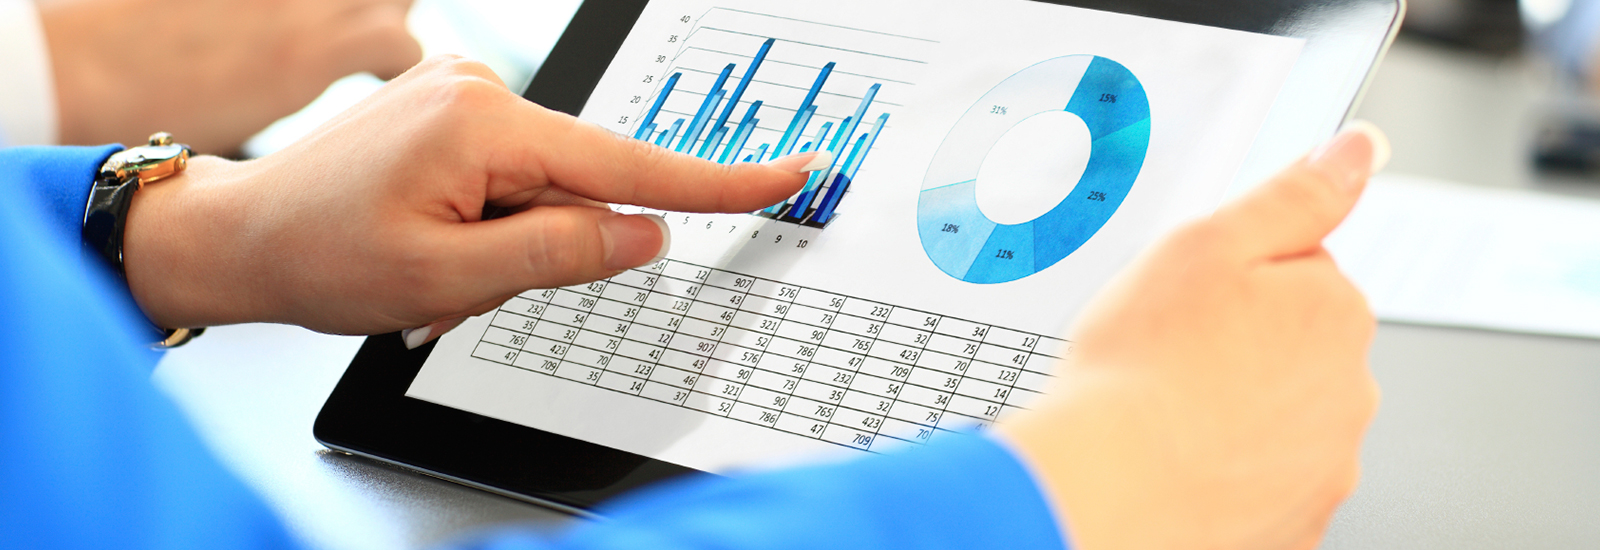 Research & Analytics - Analytics Service by Solutions4Business